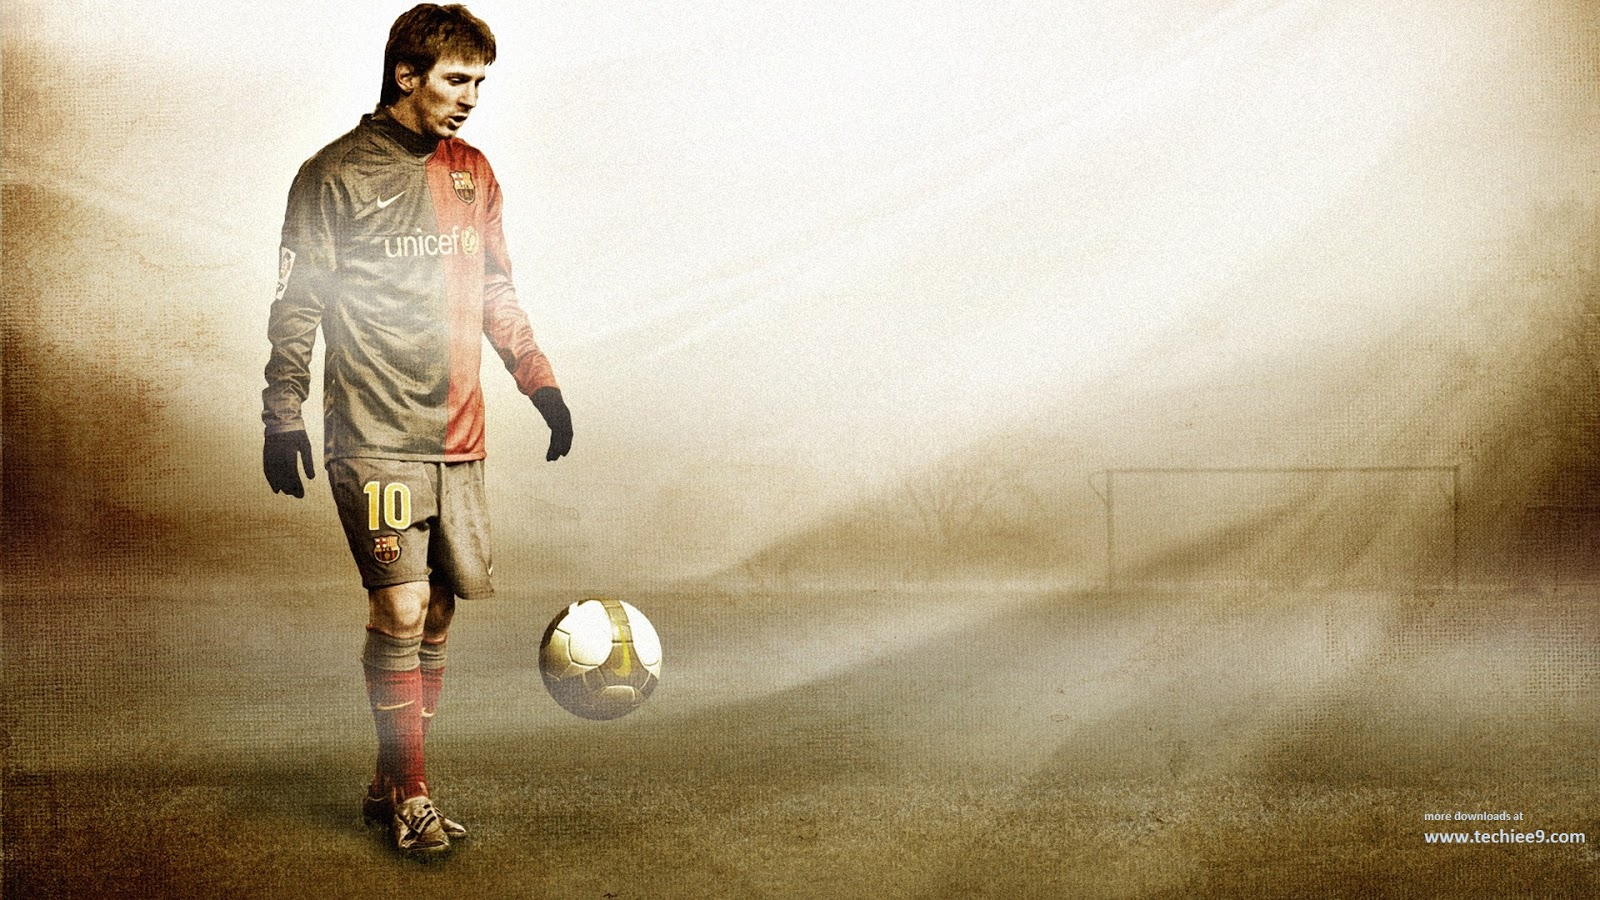 lionel messi best full hd 1920x1080 widescreen wallpaper - hd